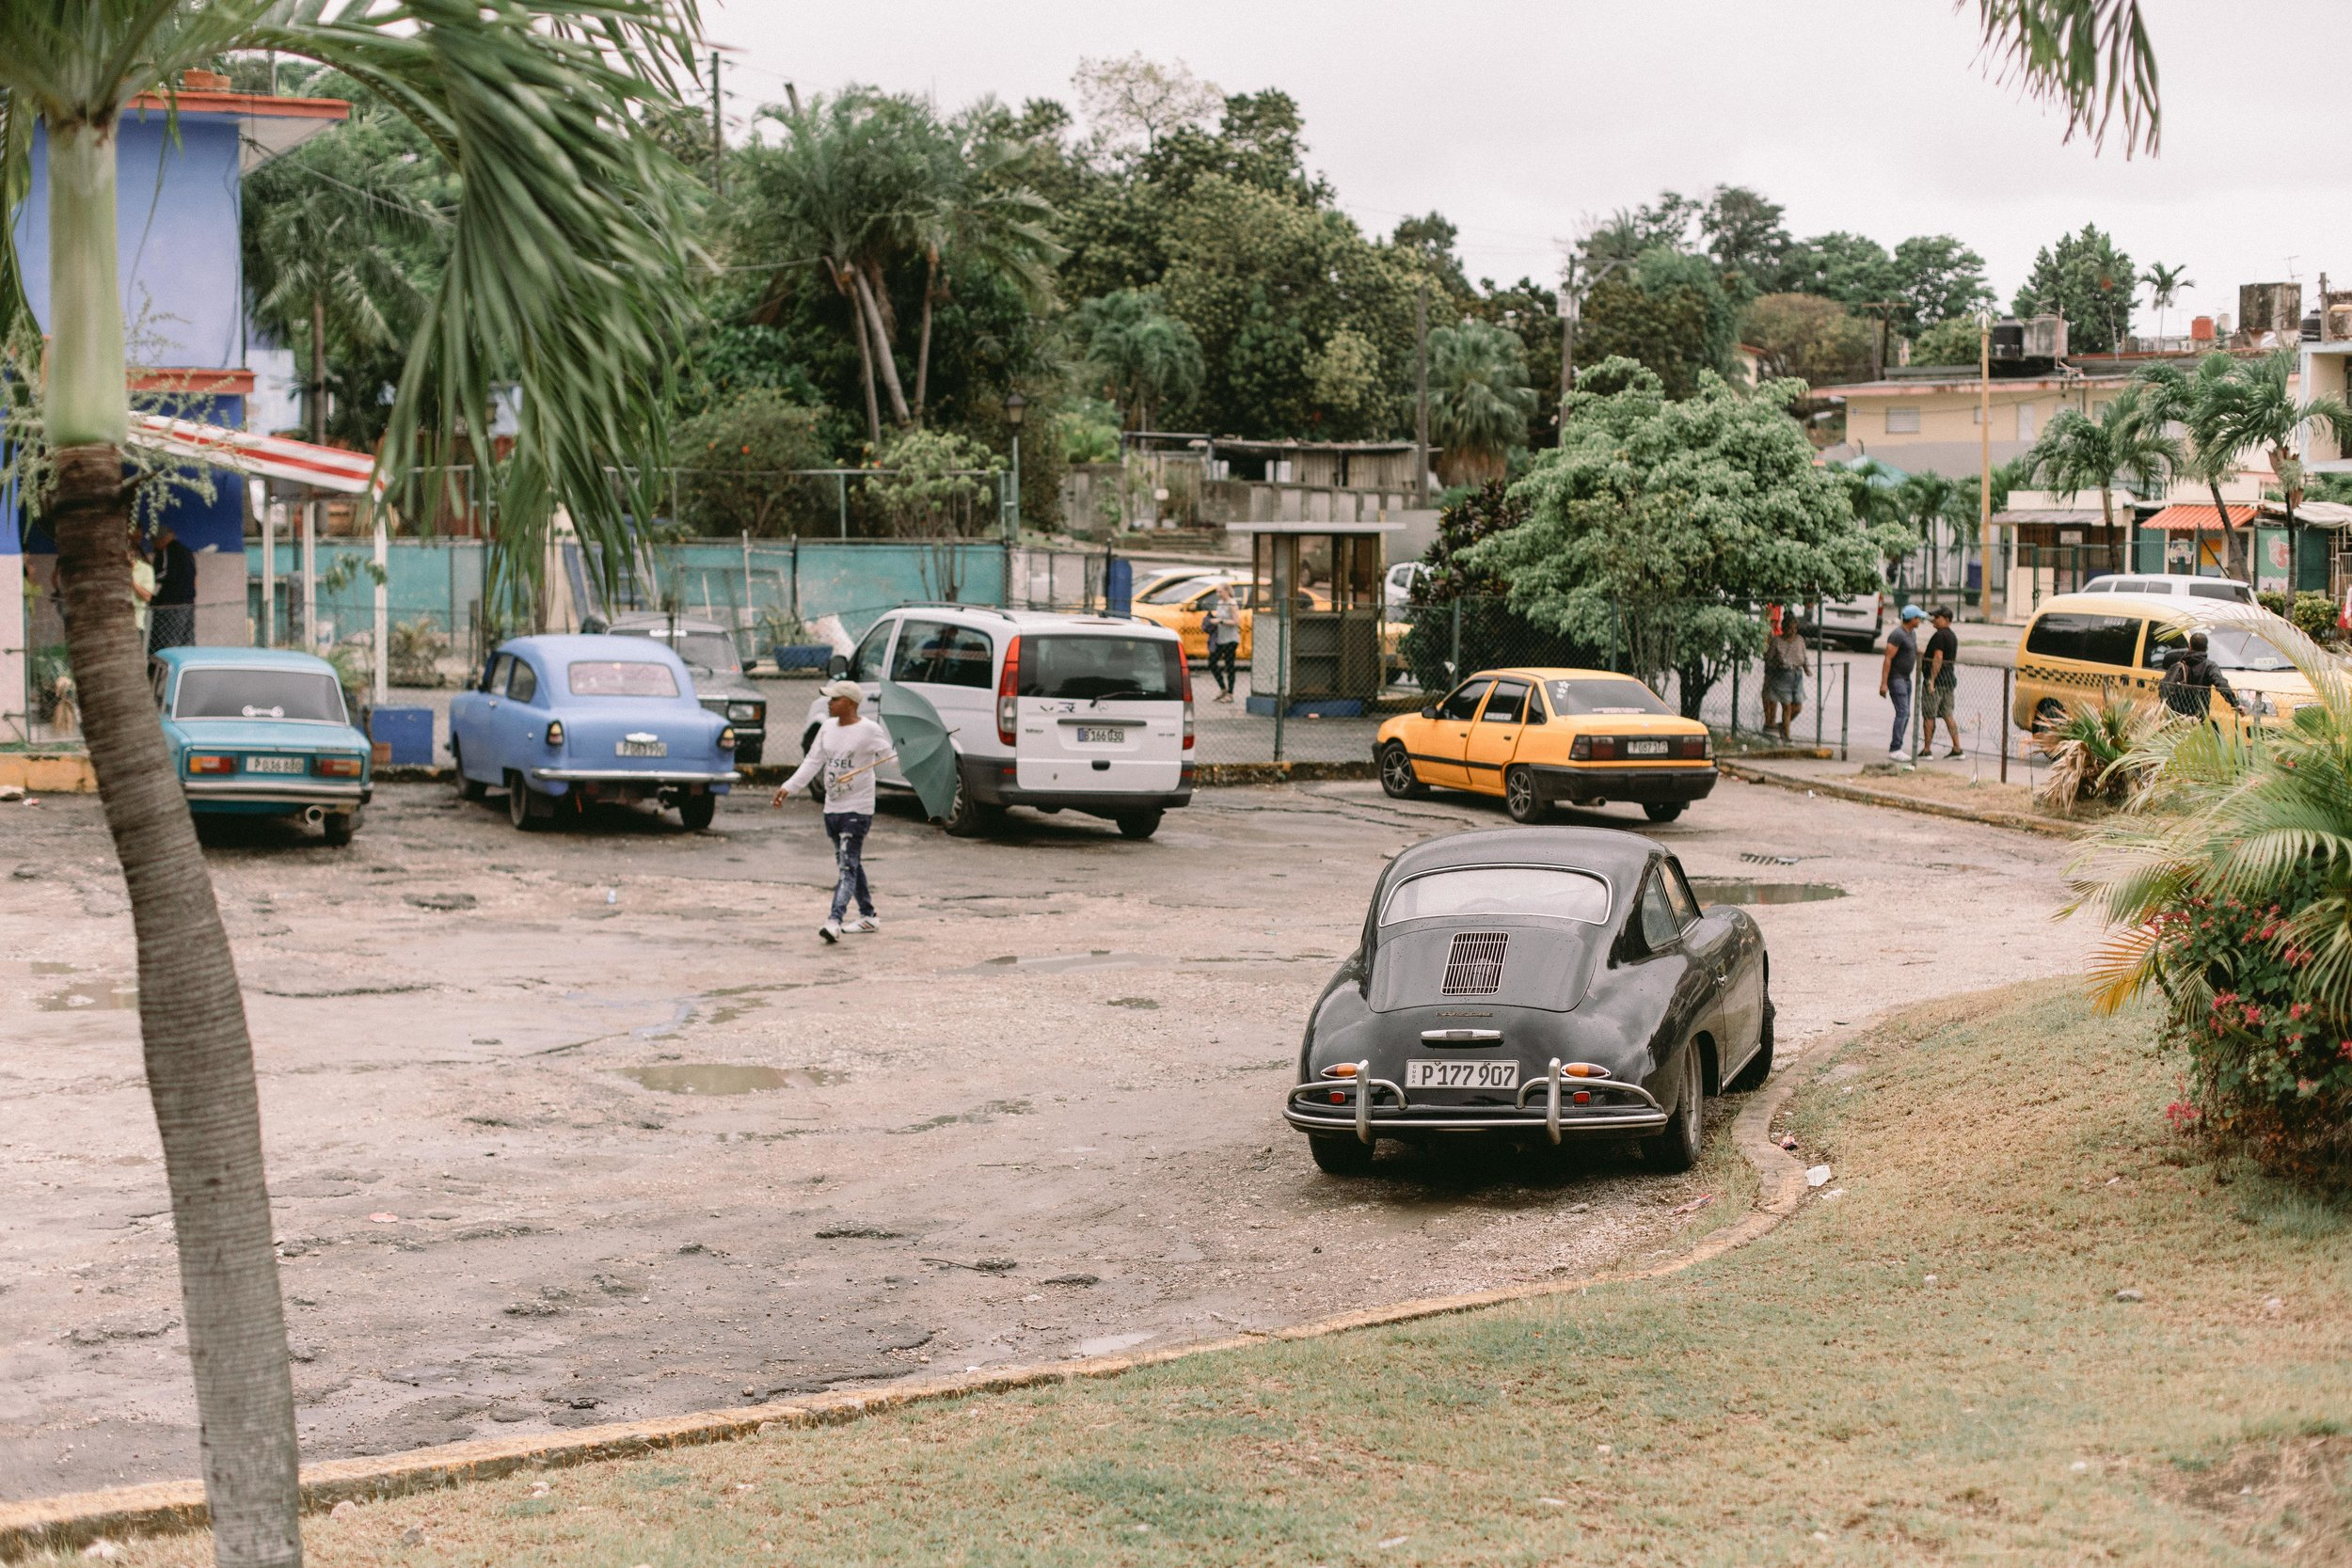 cuba_selects_all_lowres-7289-2.jpg